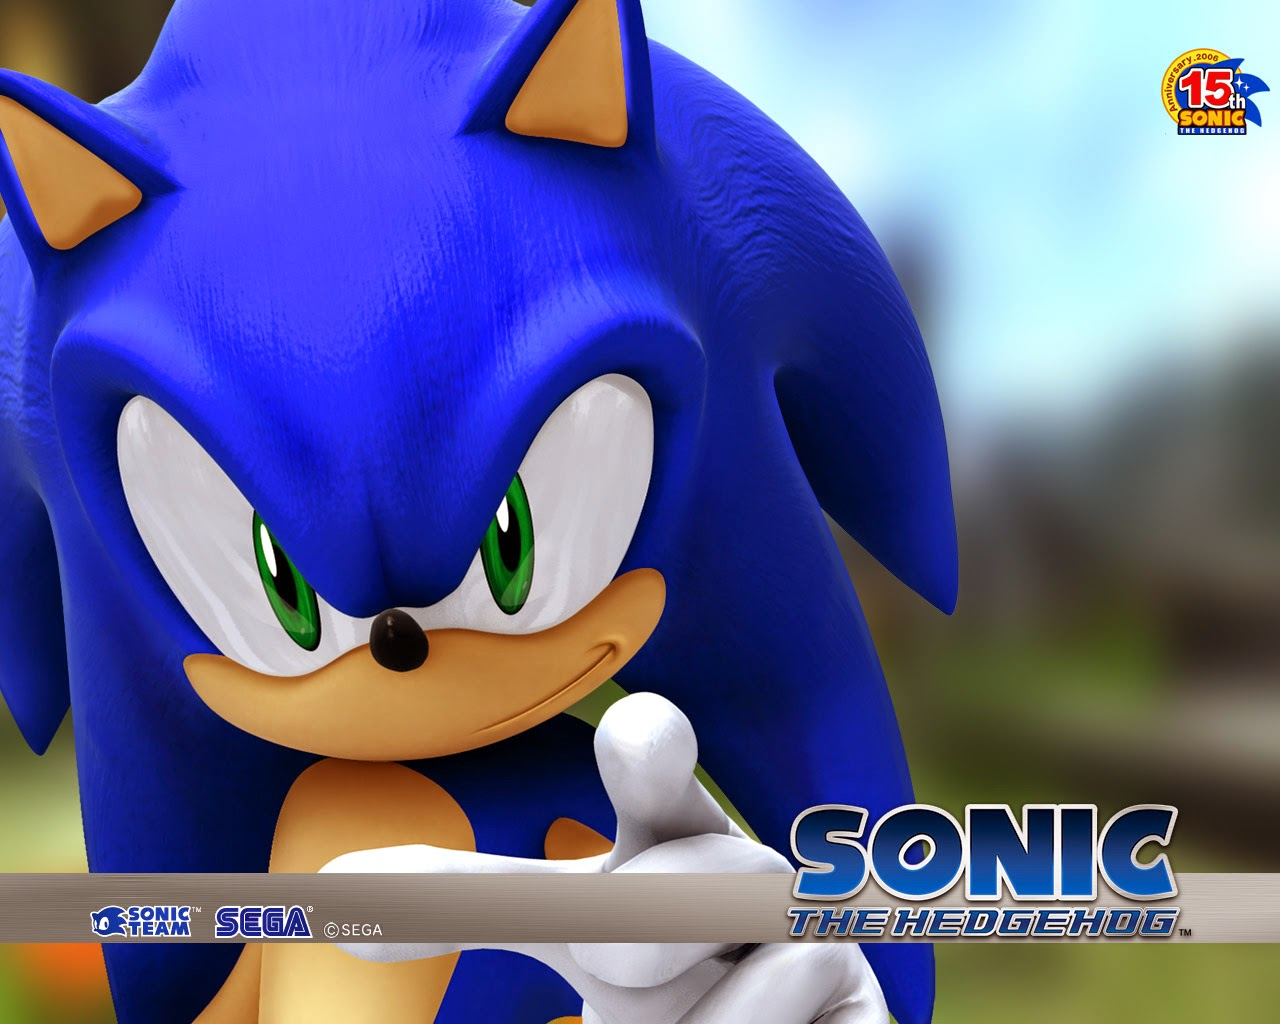 sonic-the-hedgehog-live-action-movie